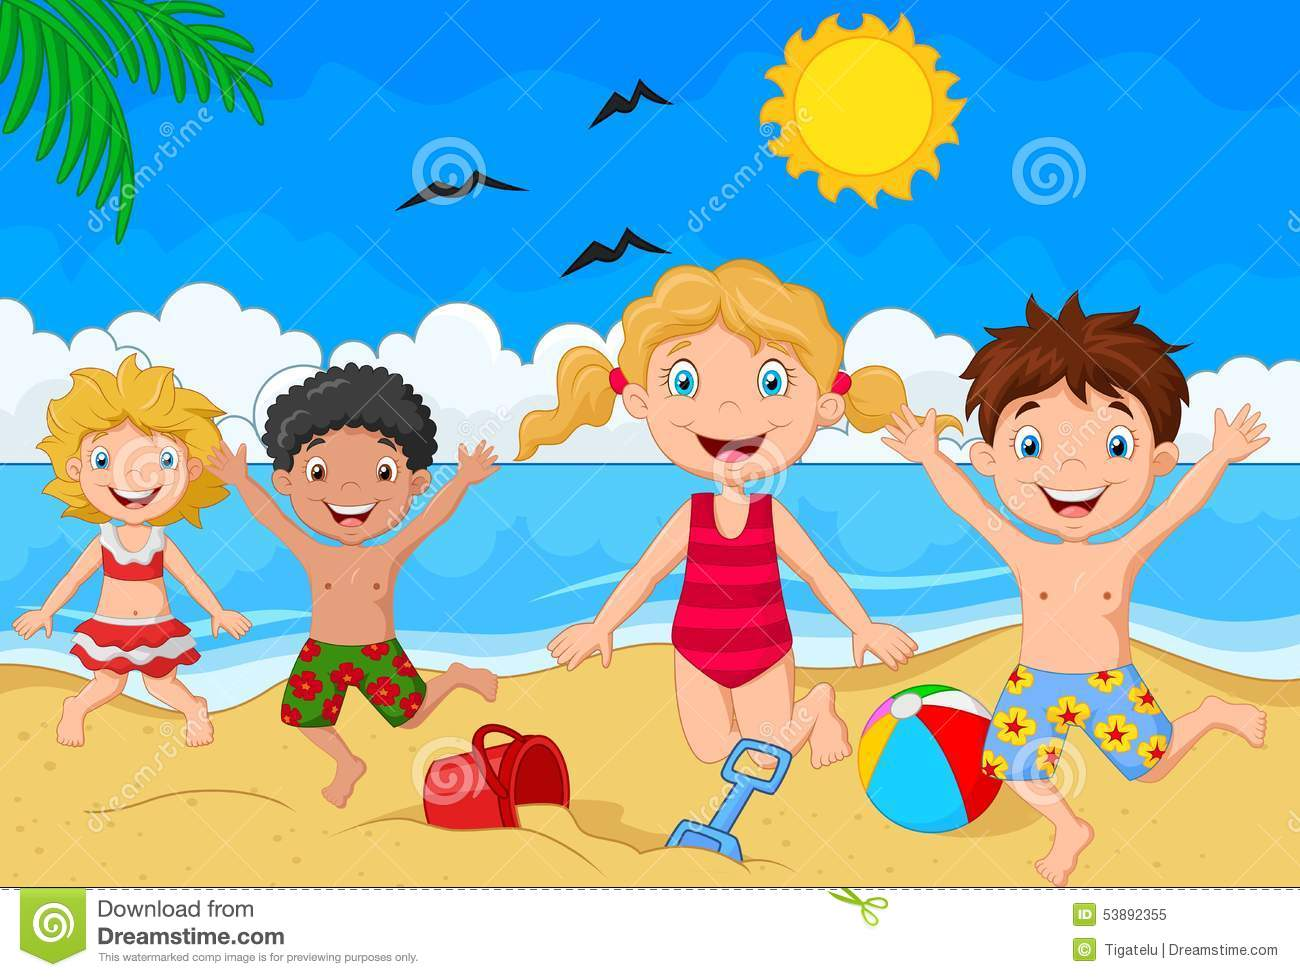 Cartoon Summer Pictures Group with 79+ items.